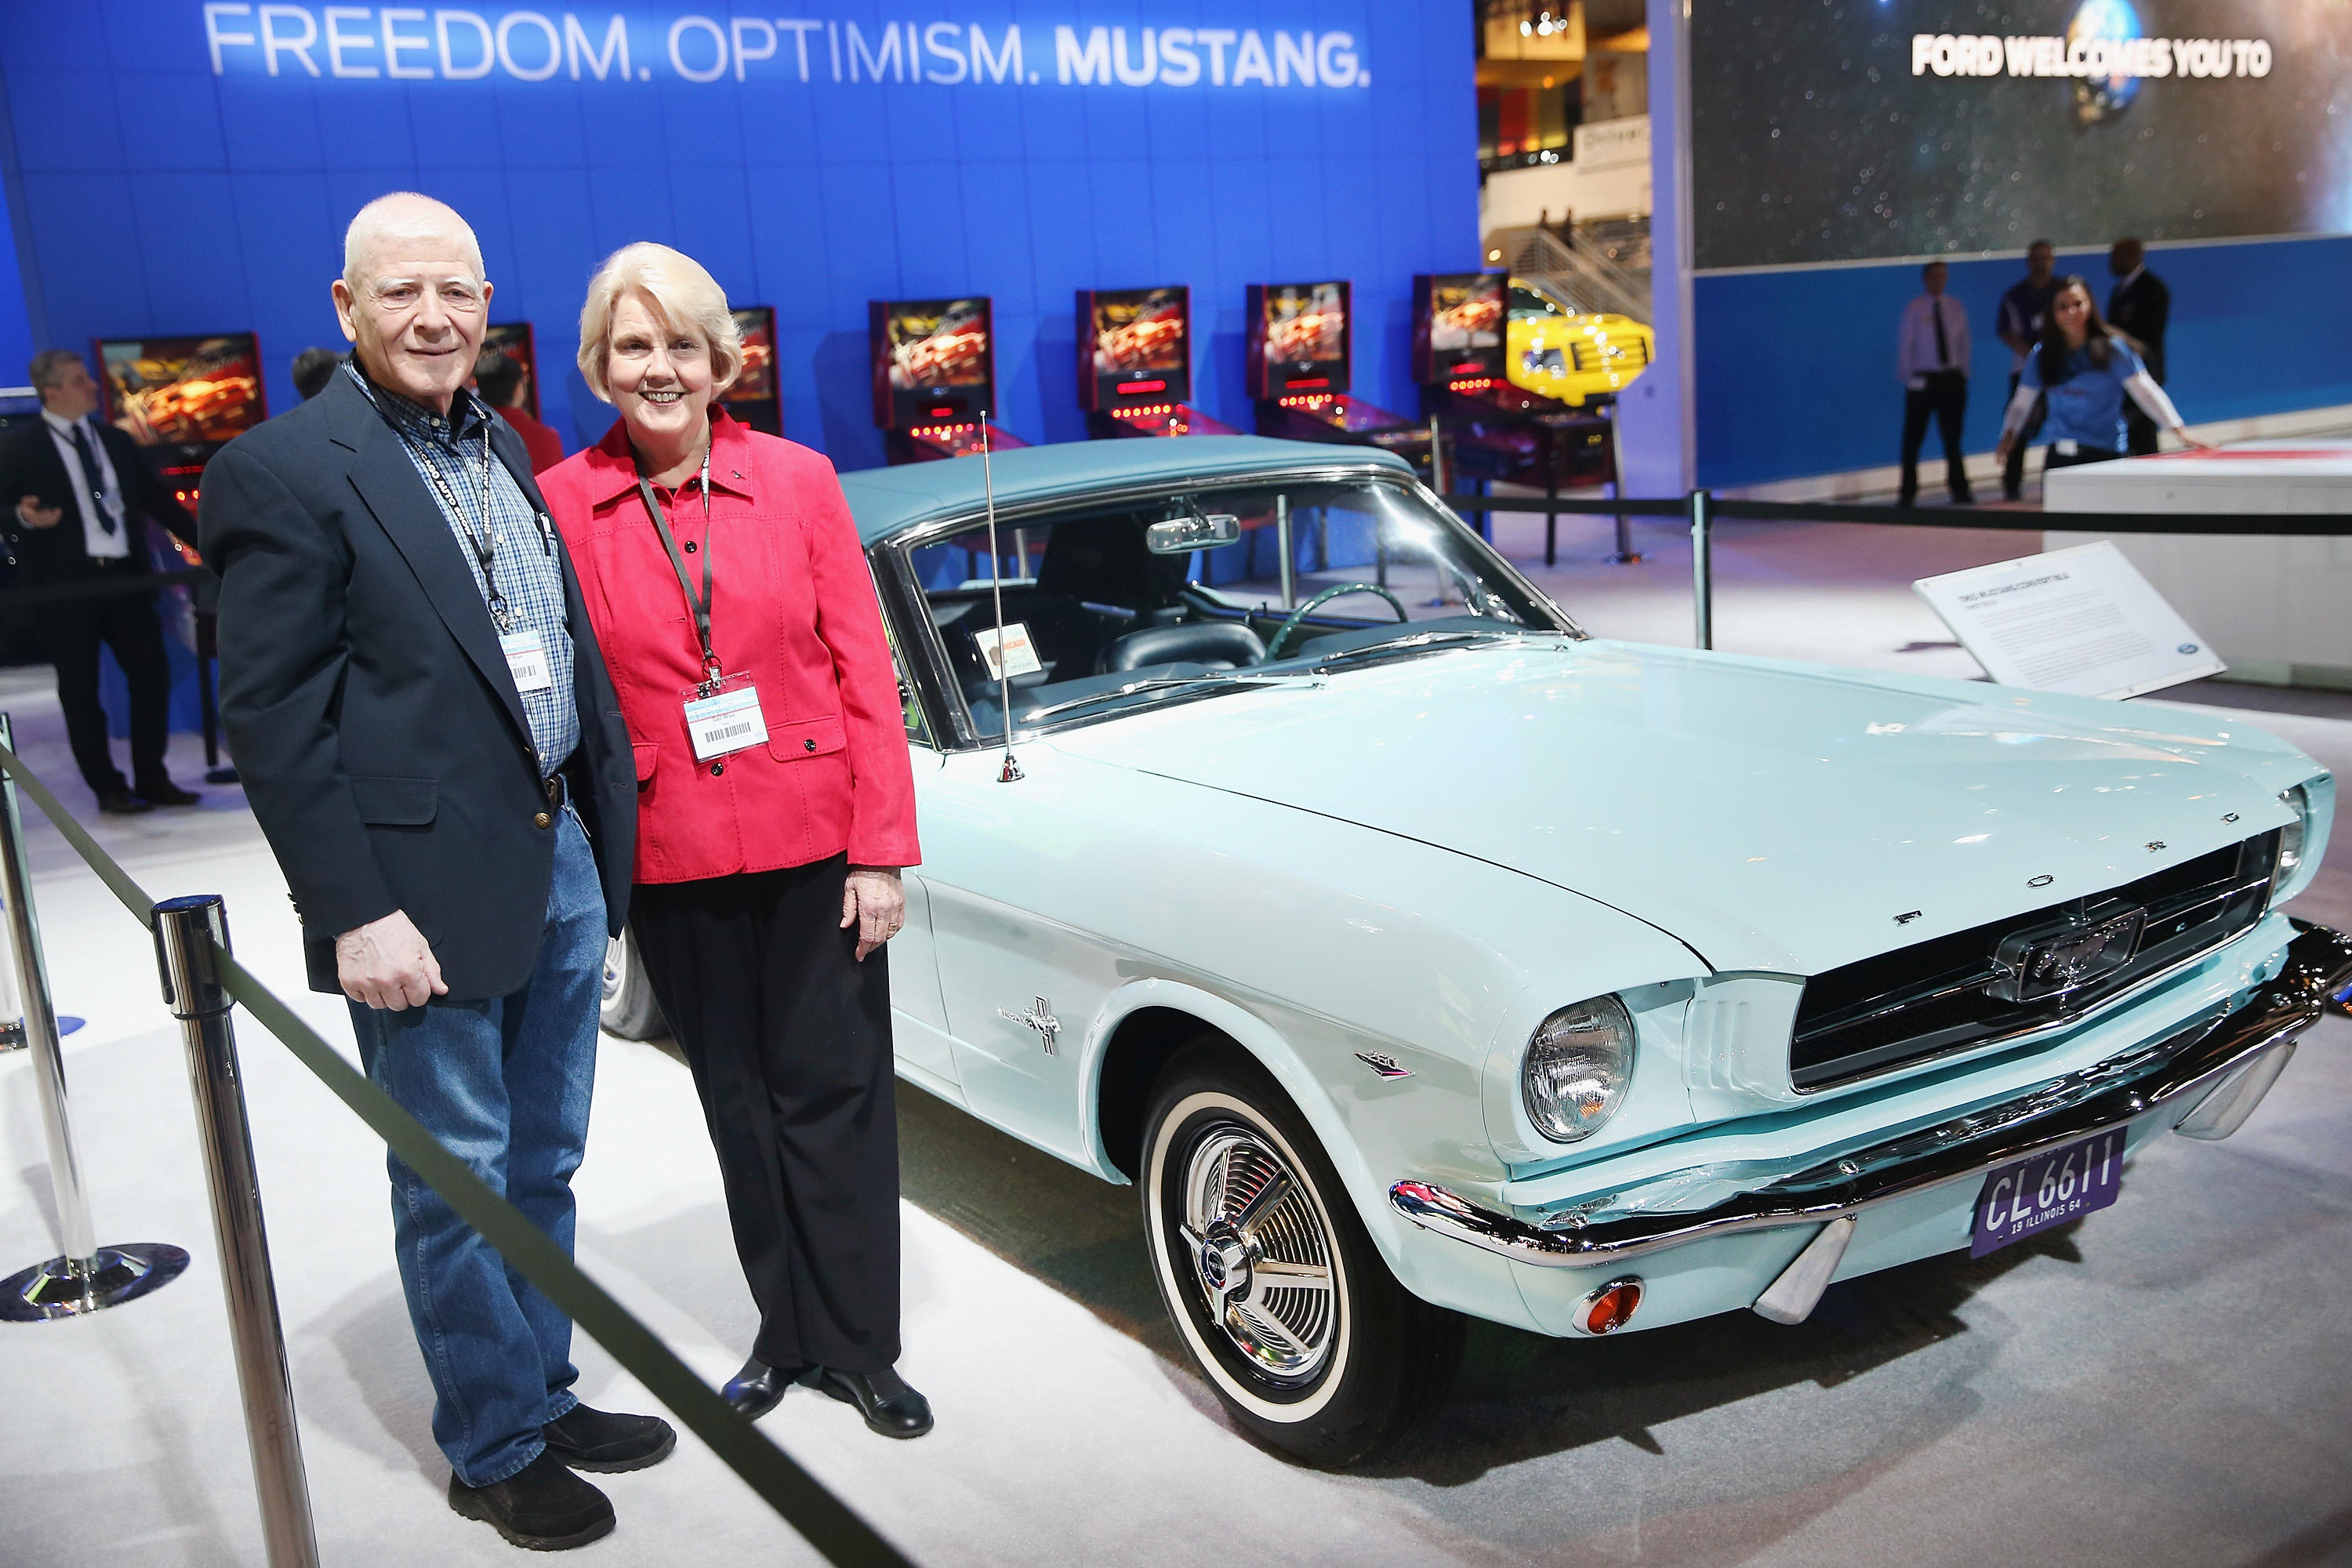 First Ford Mustang ever sold: Gail Wise, owner of sky blue